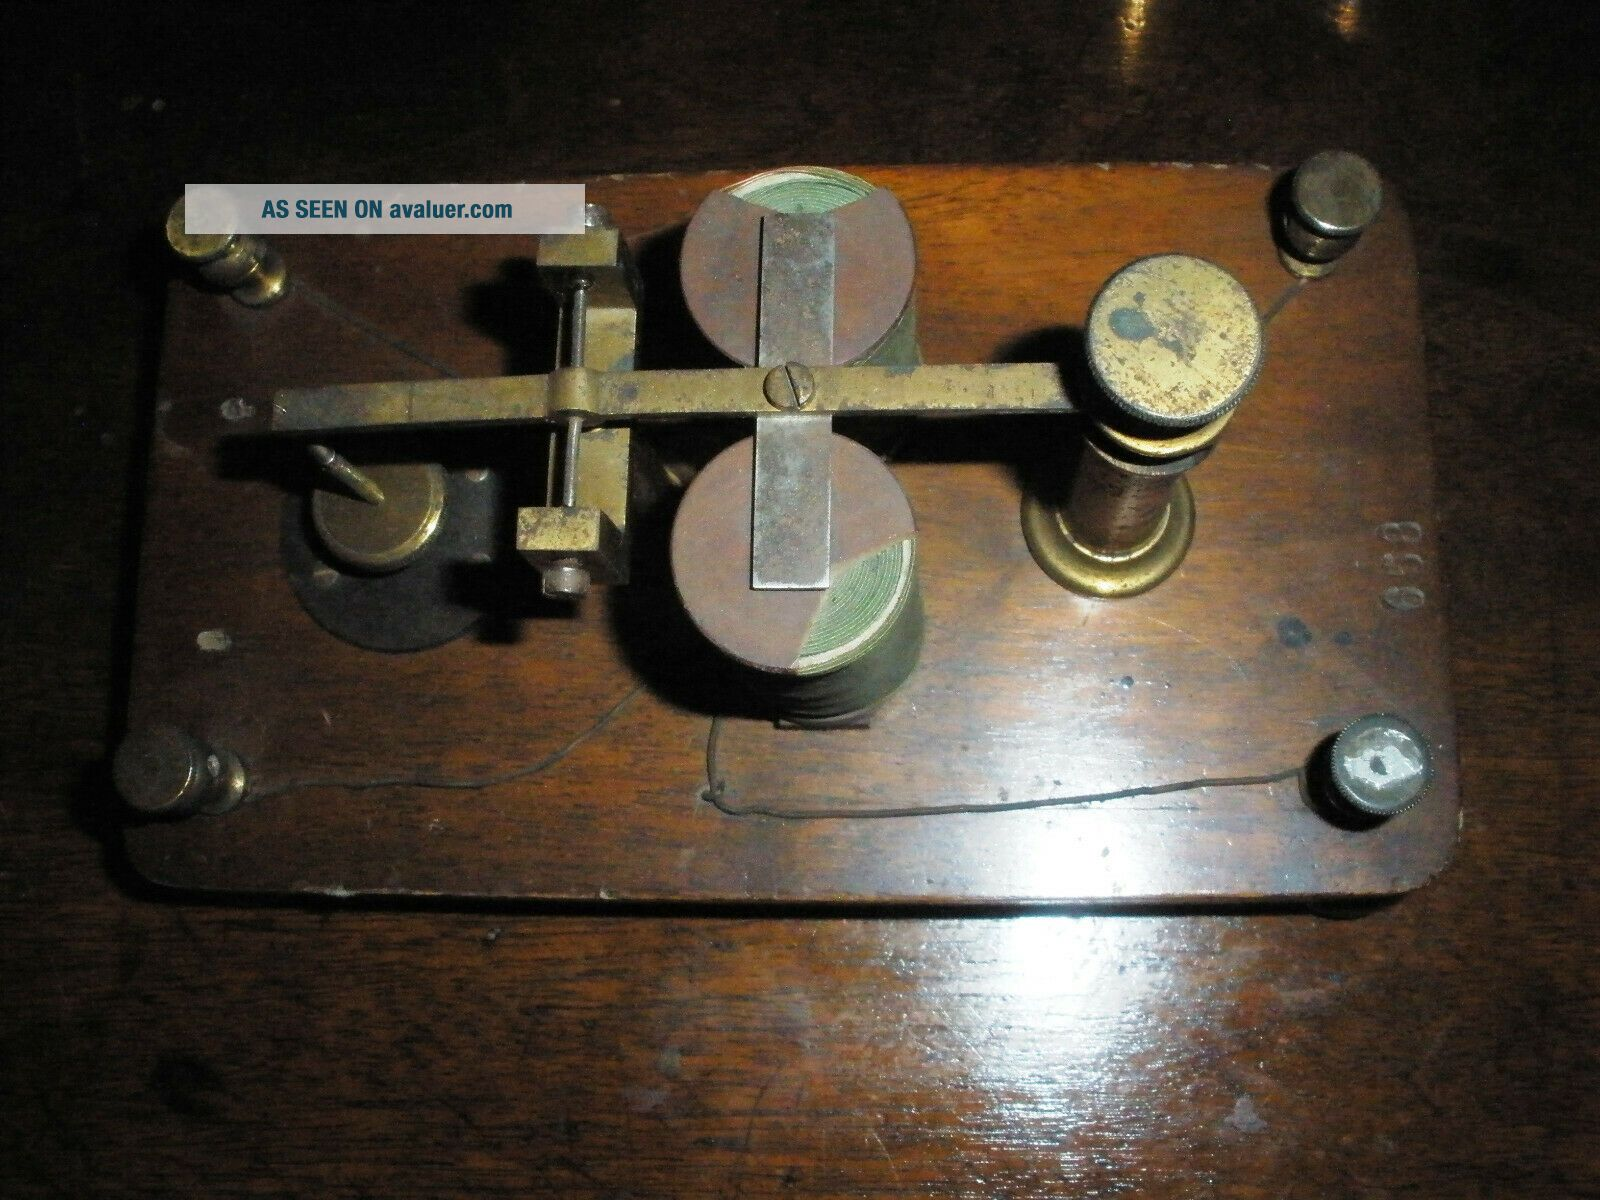 Very ancient telegraph